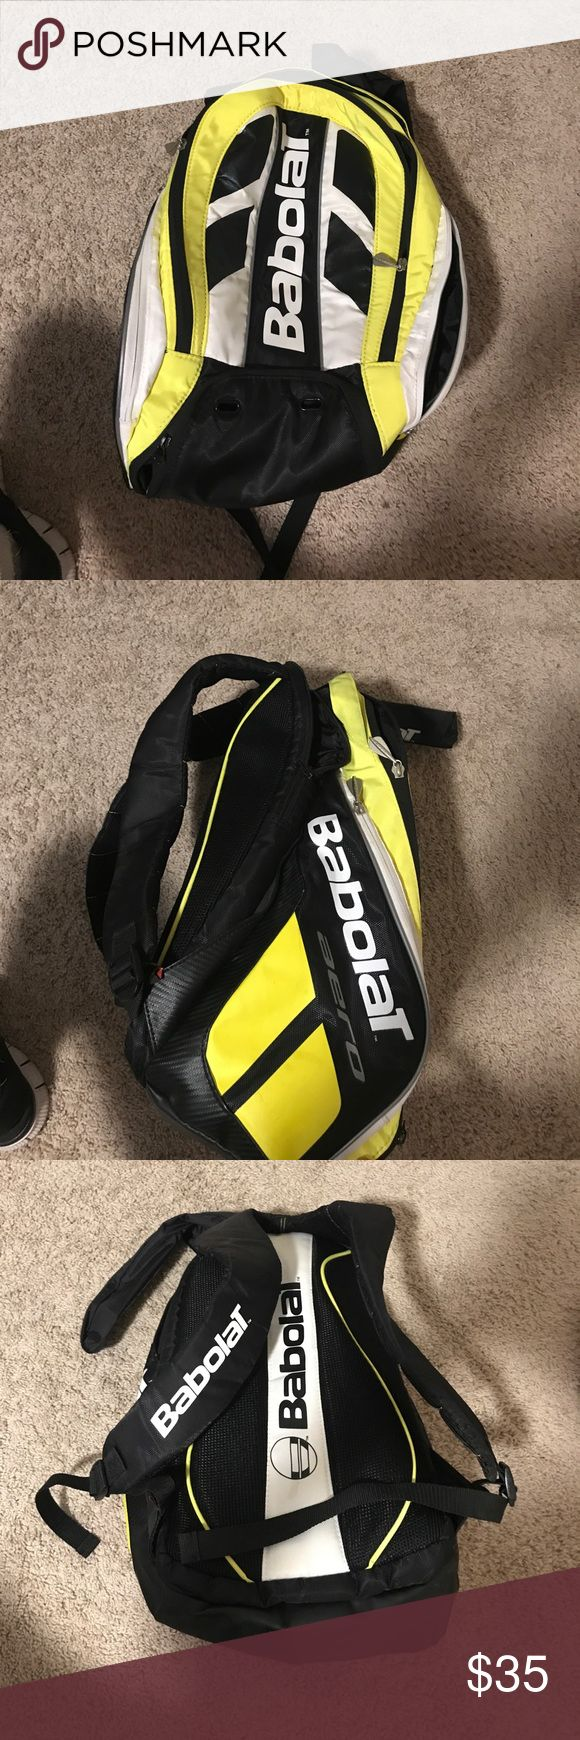 Babolat Tennis bag Yellow and black babolat tennis bag. In great condition, 3 pockets and 2 side pockets Bags Backpacks